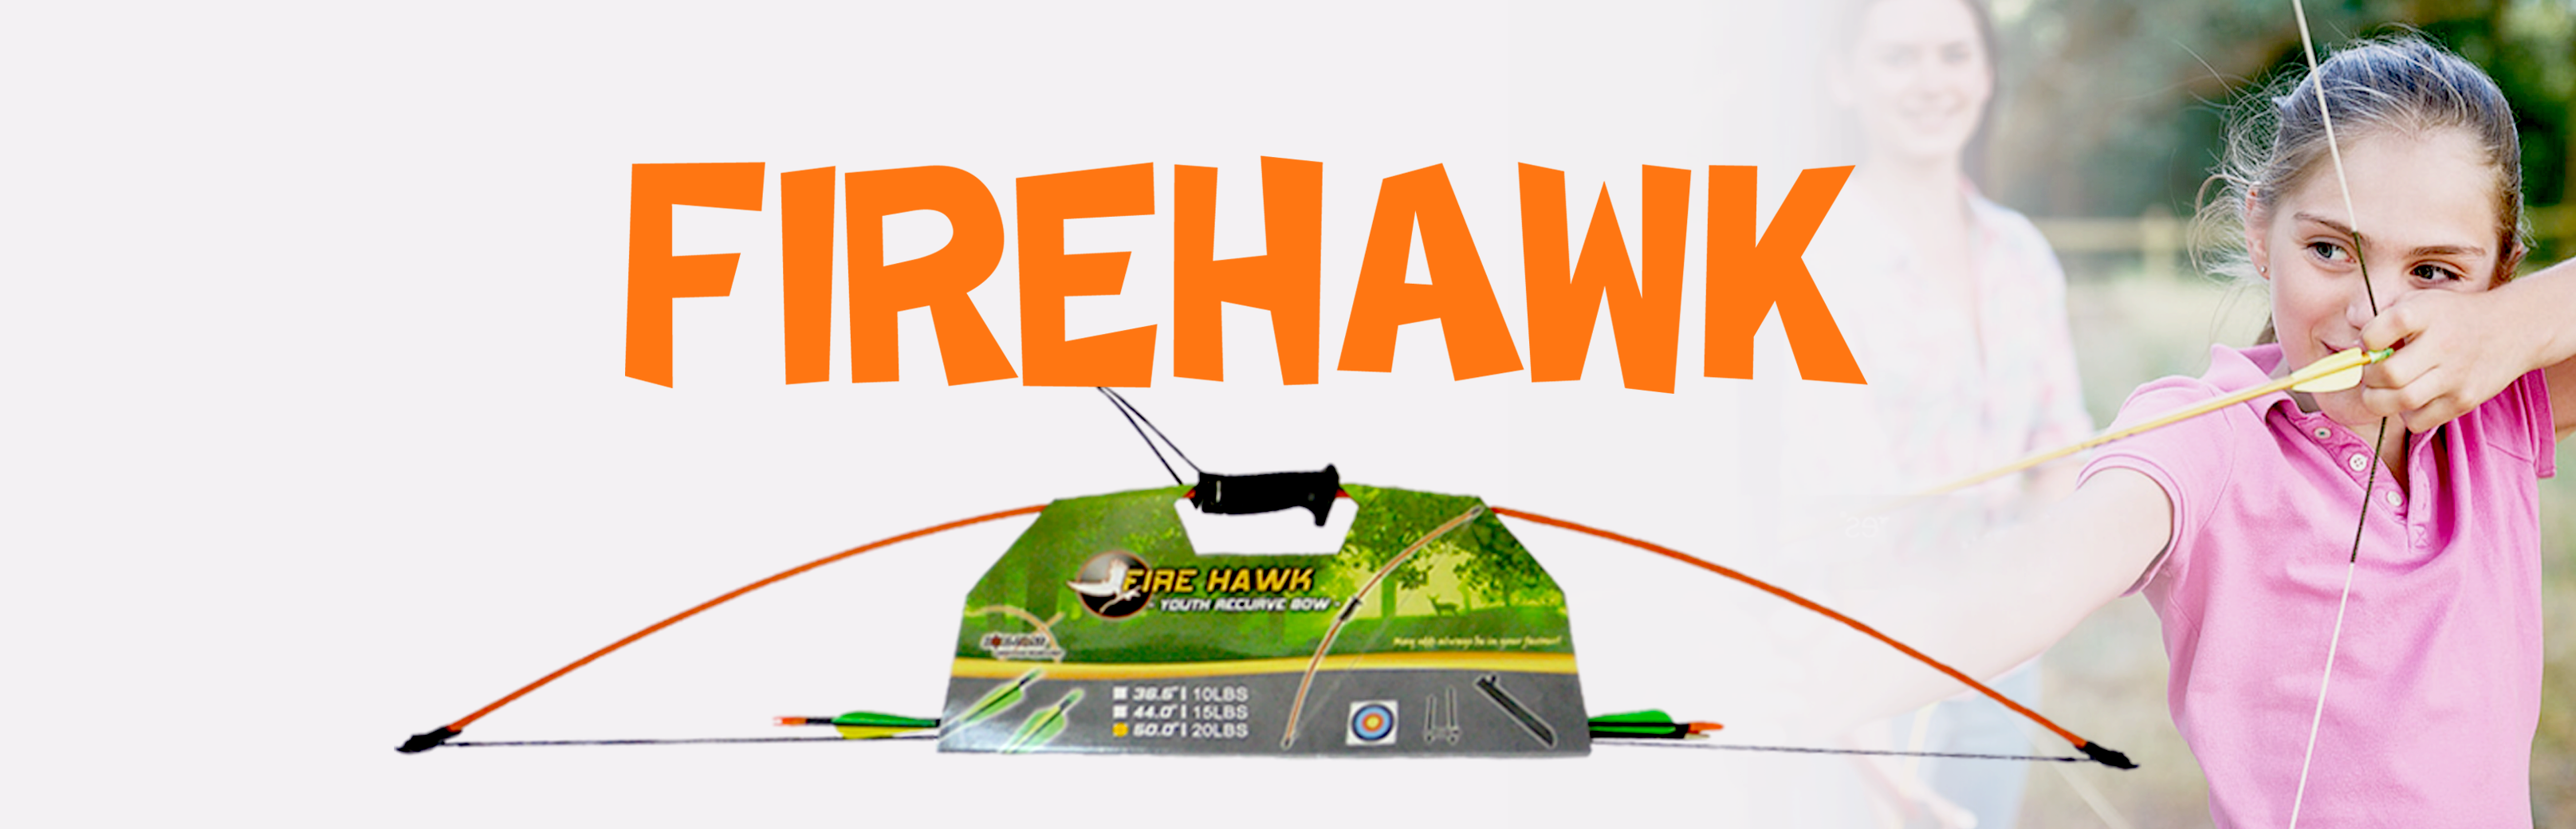 /archive/product/item/images/FIREHAWK/FIRE-HAWK-5.png